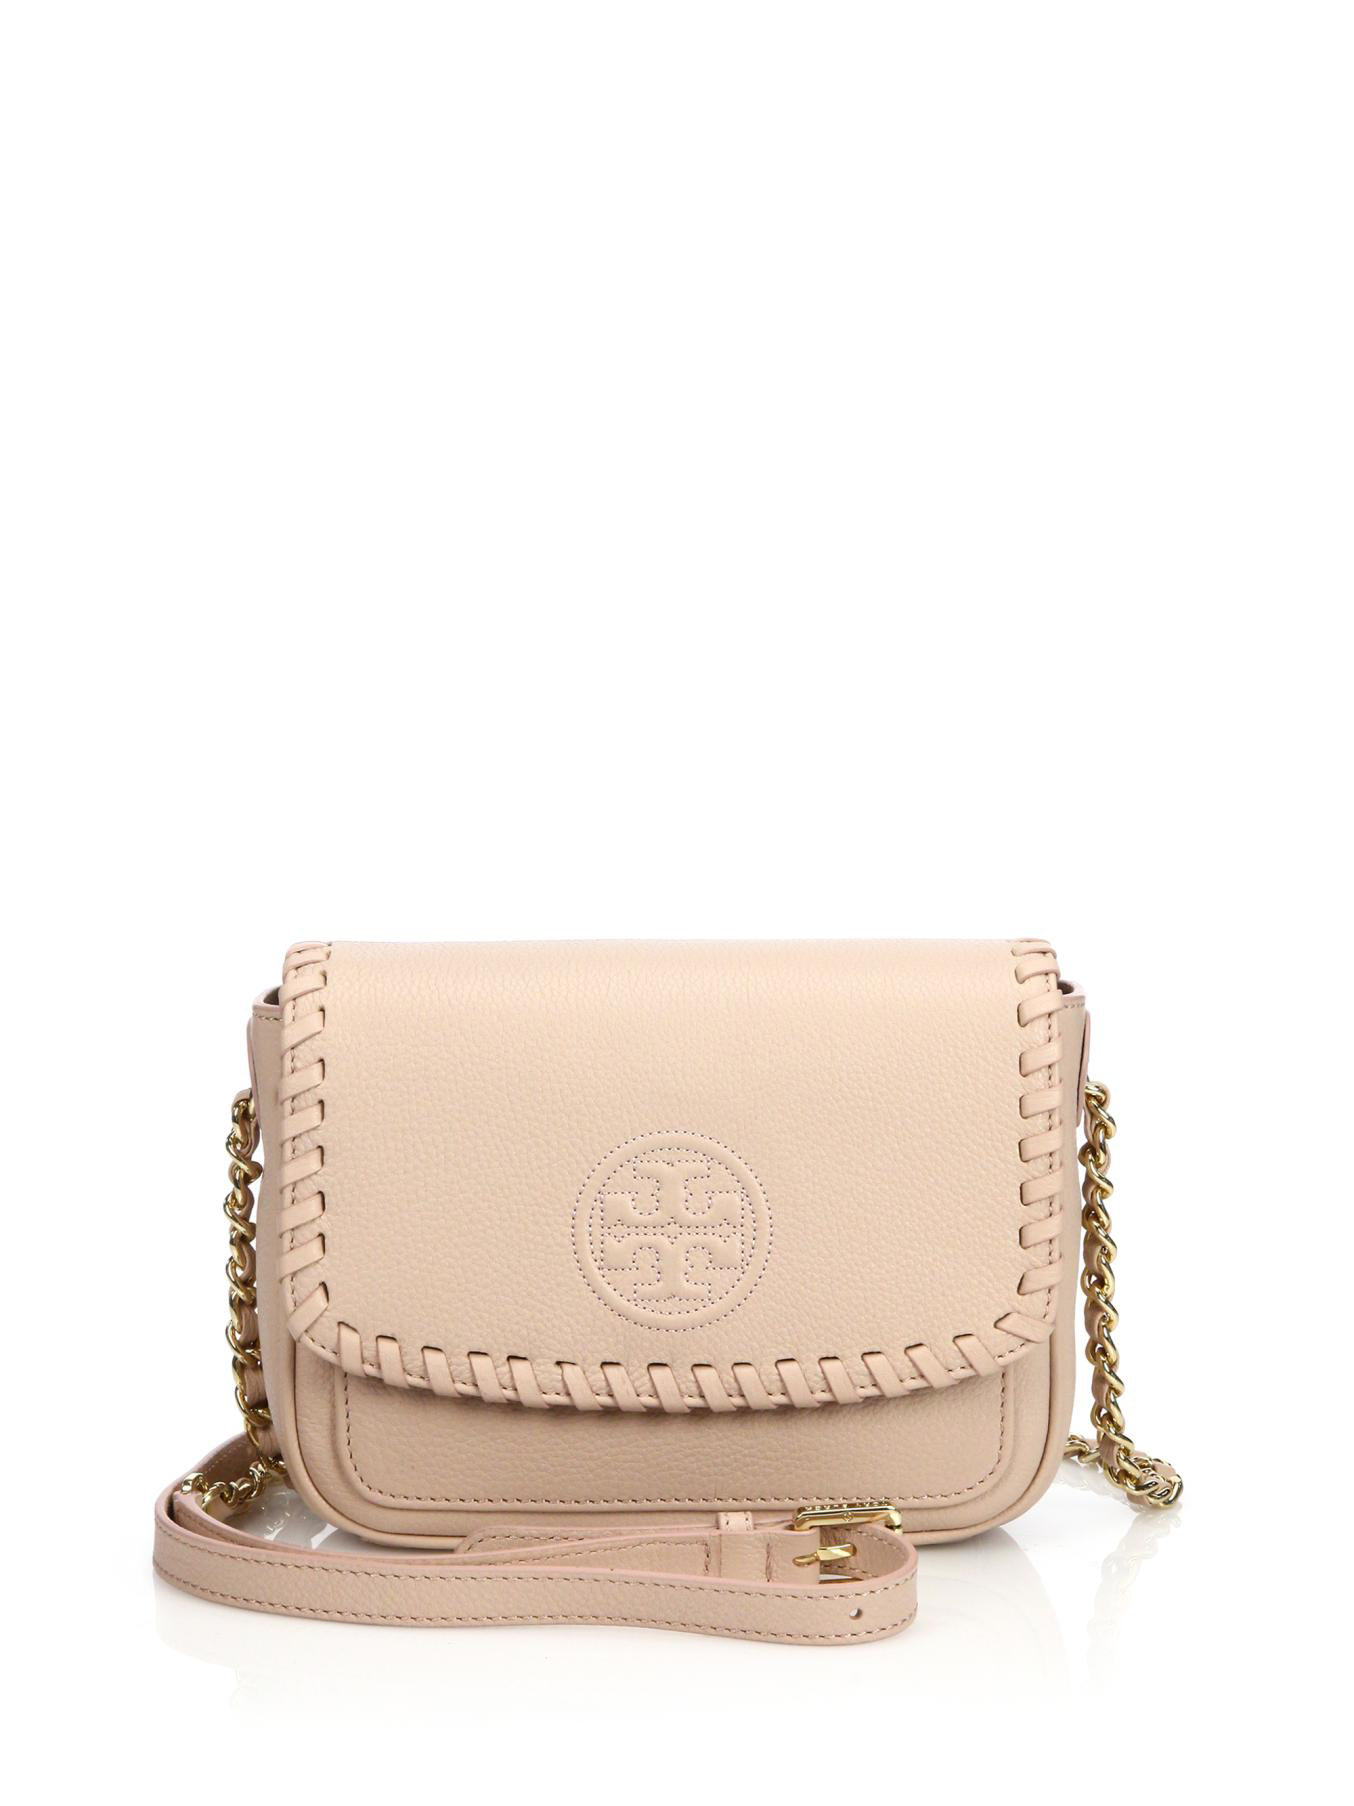 a57687ccf9474 Lyst - Tory Burch Marion Mini Crossbody Bag in Brown